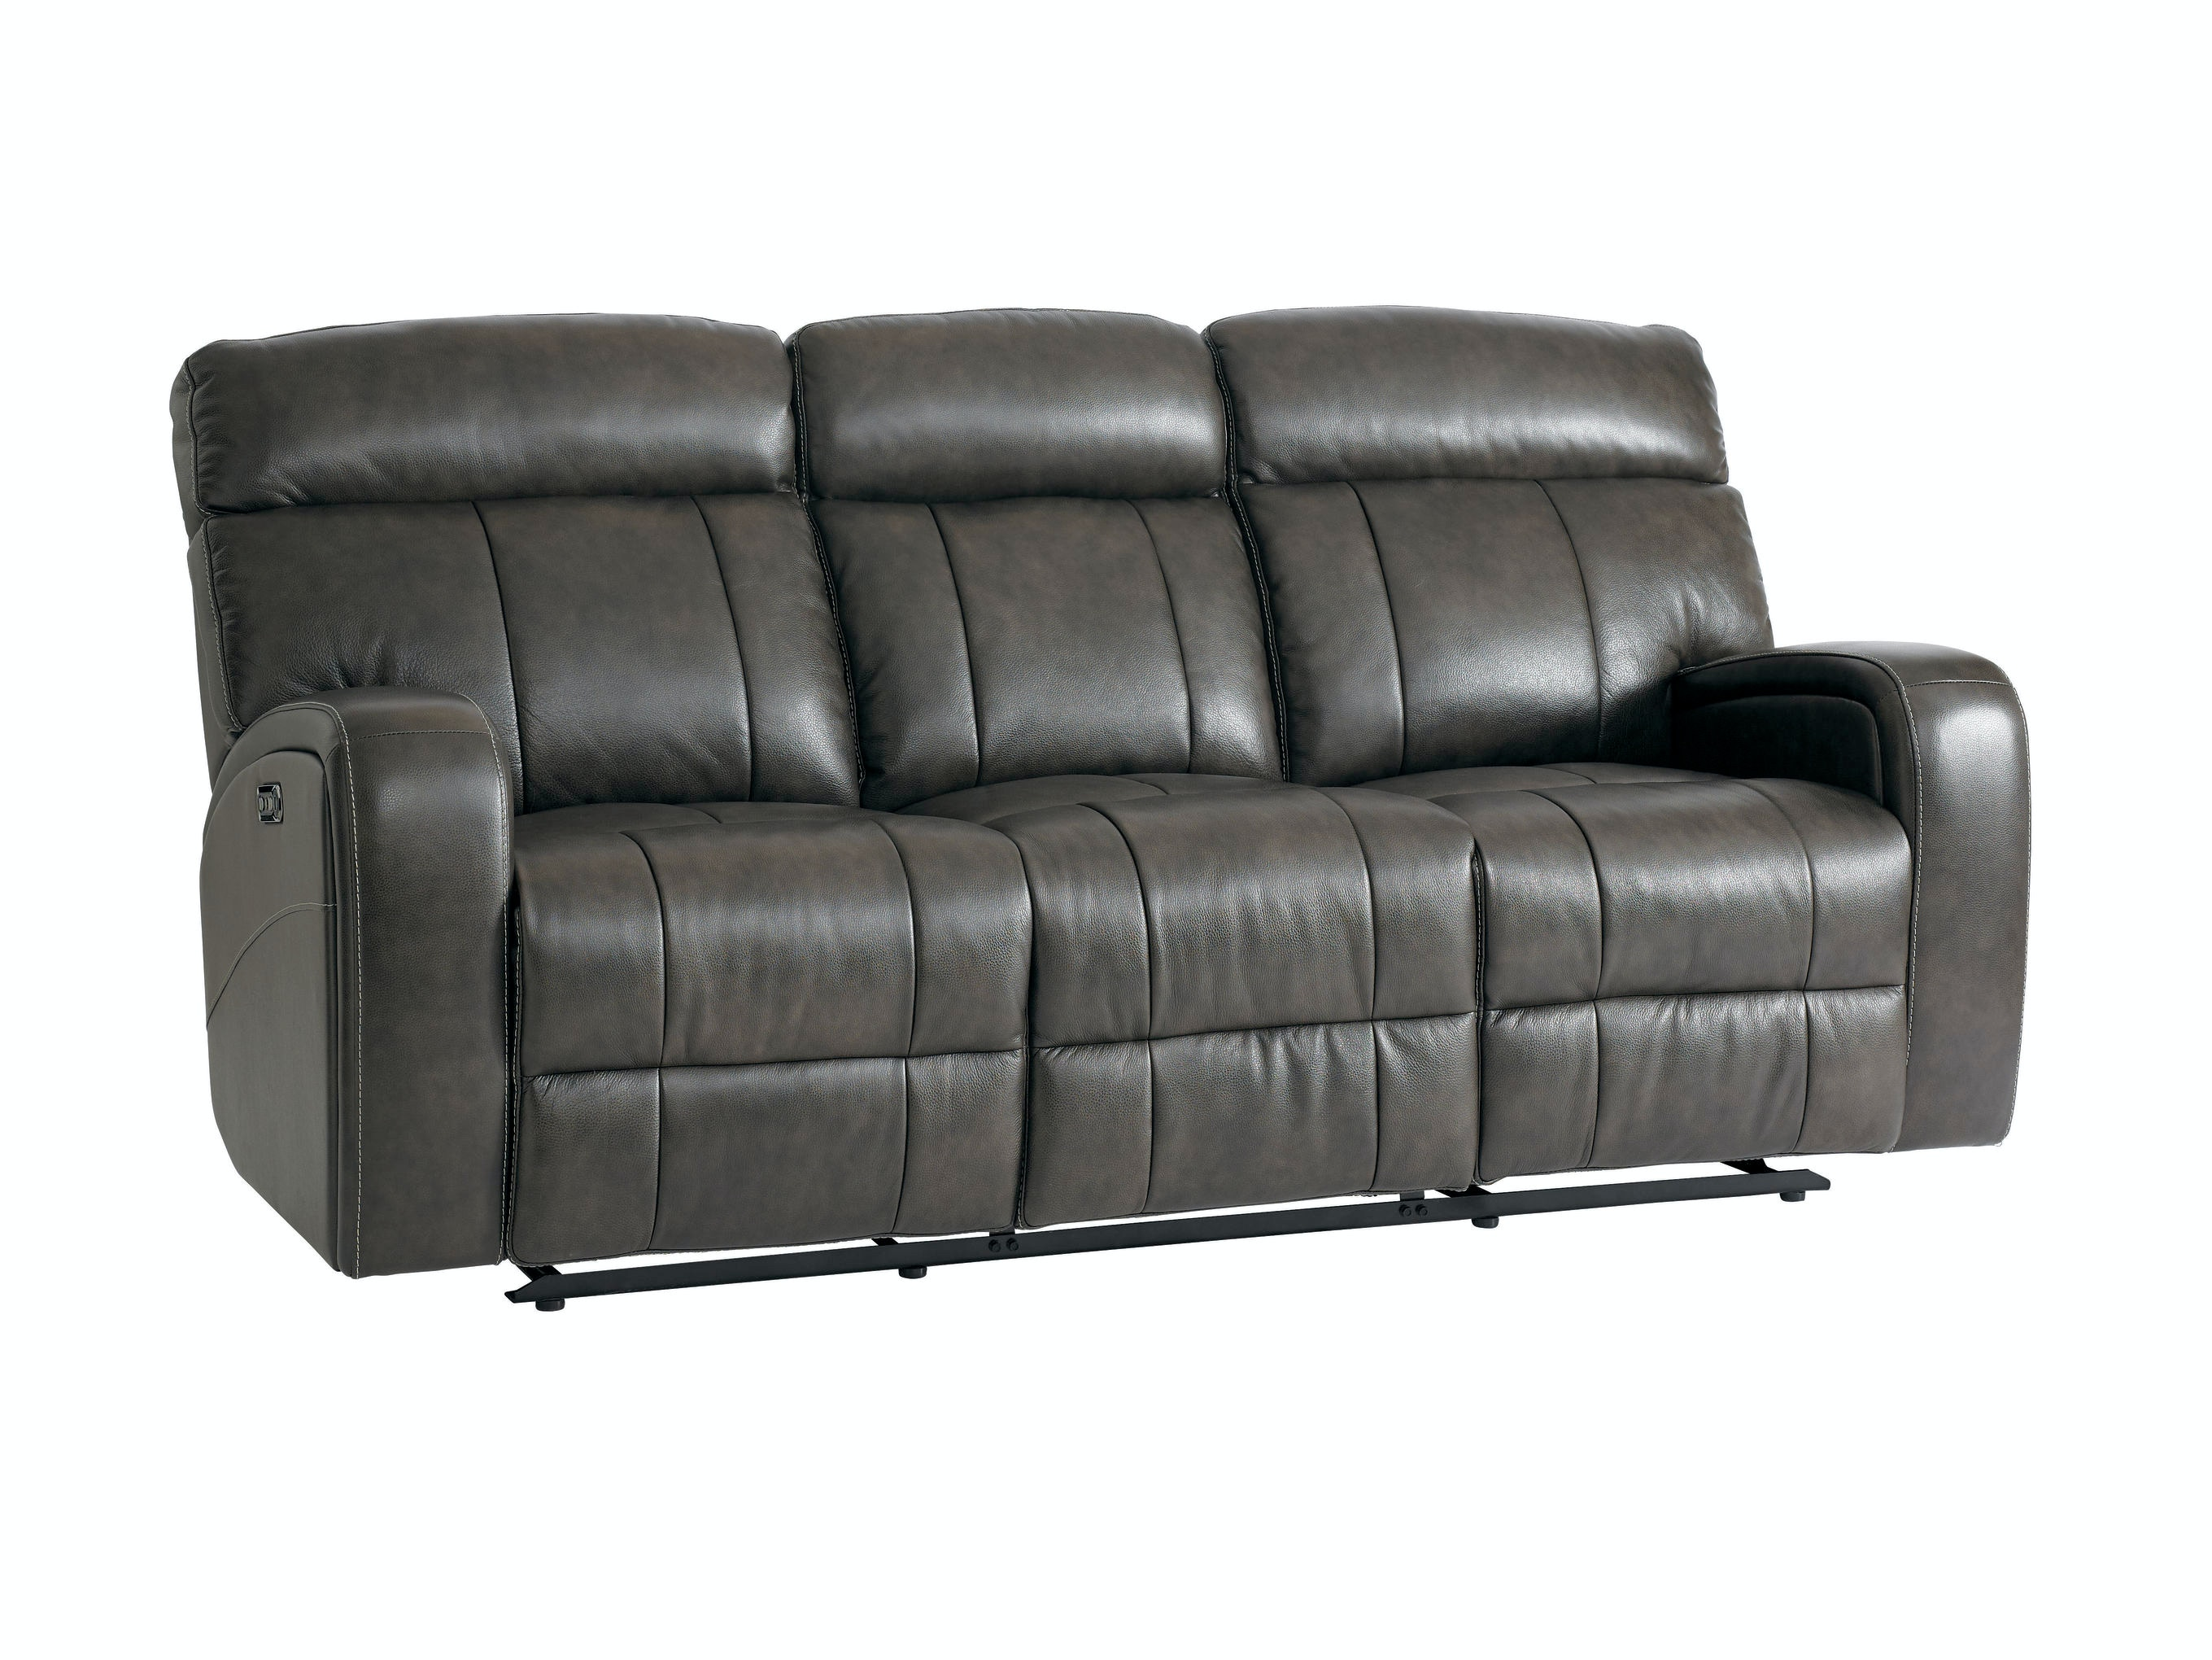 Captivating Bassett Beaumont Power Reclining Sofa 742062